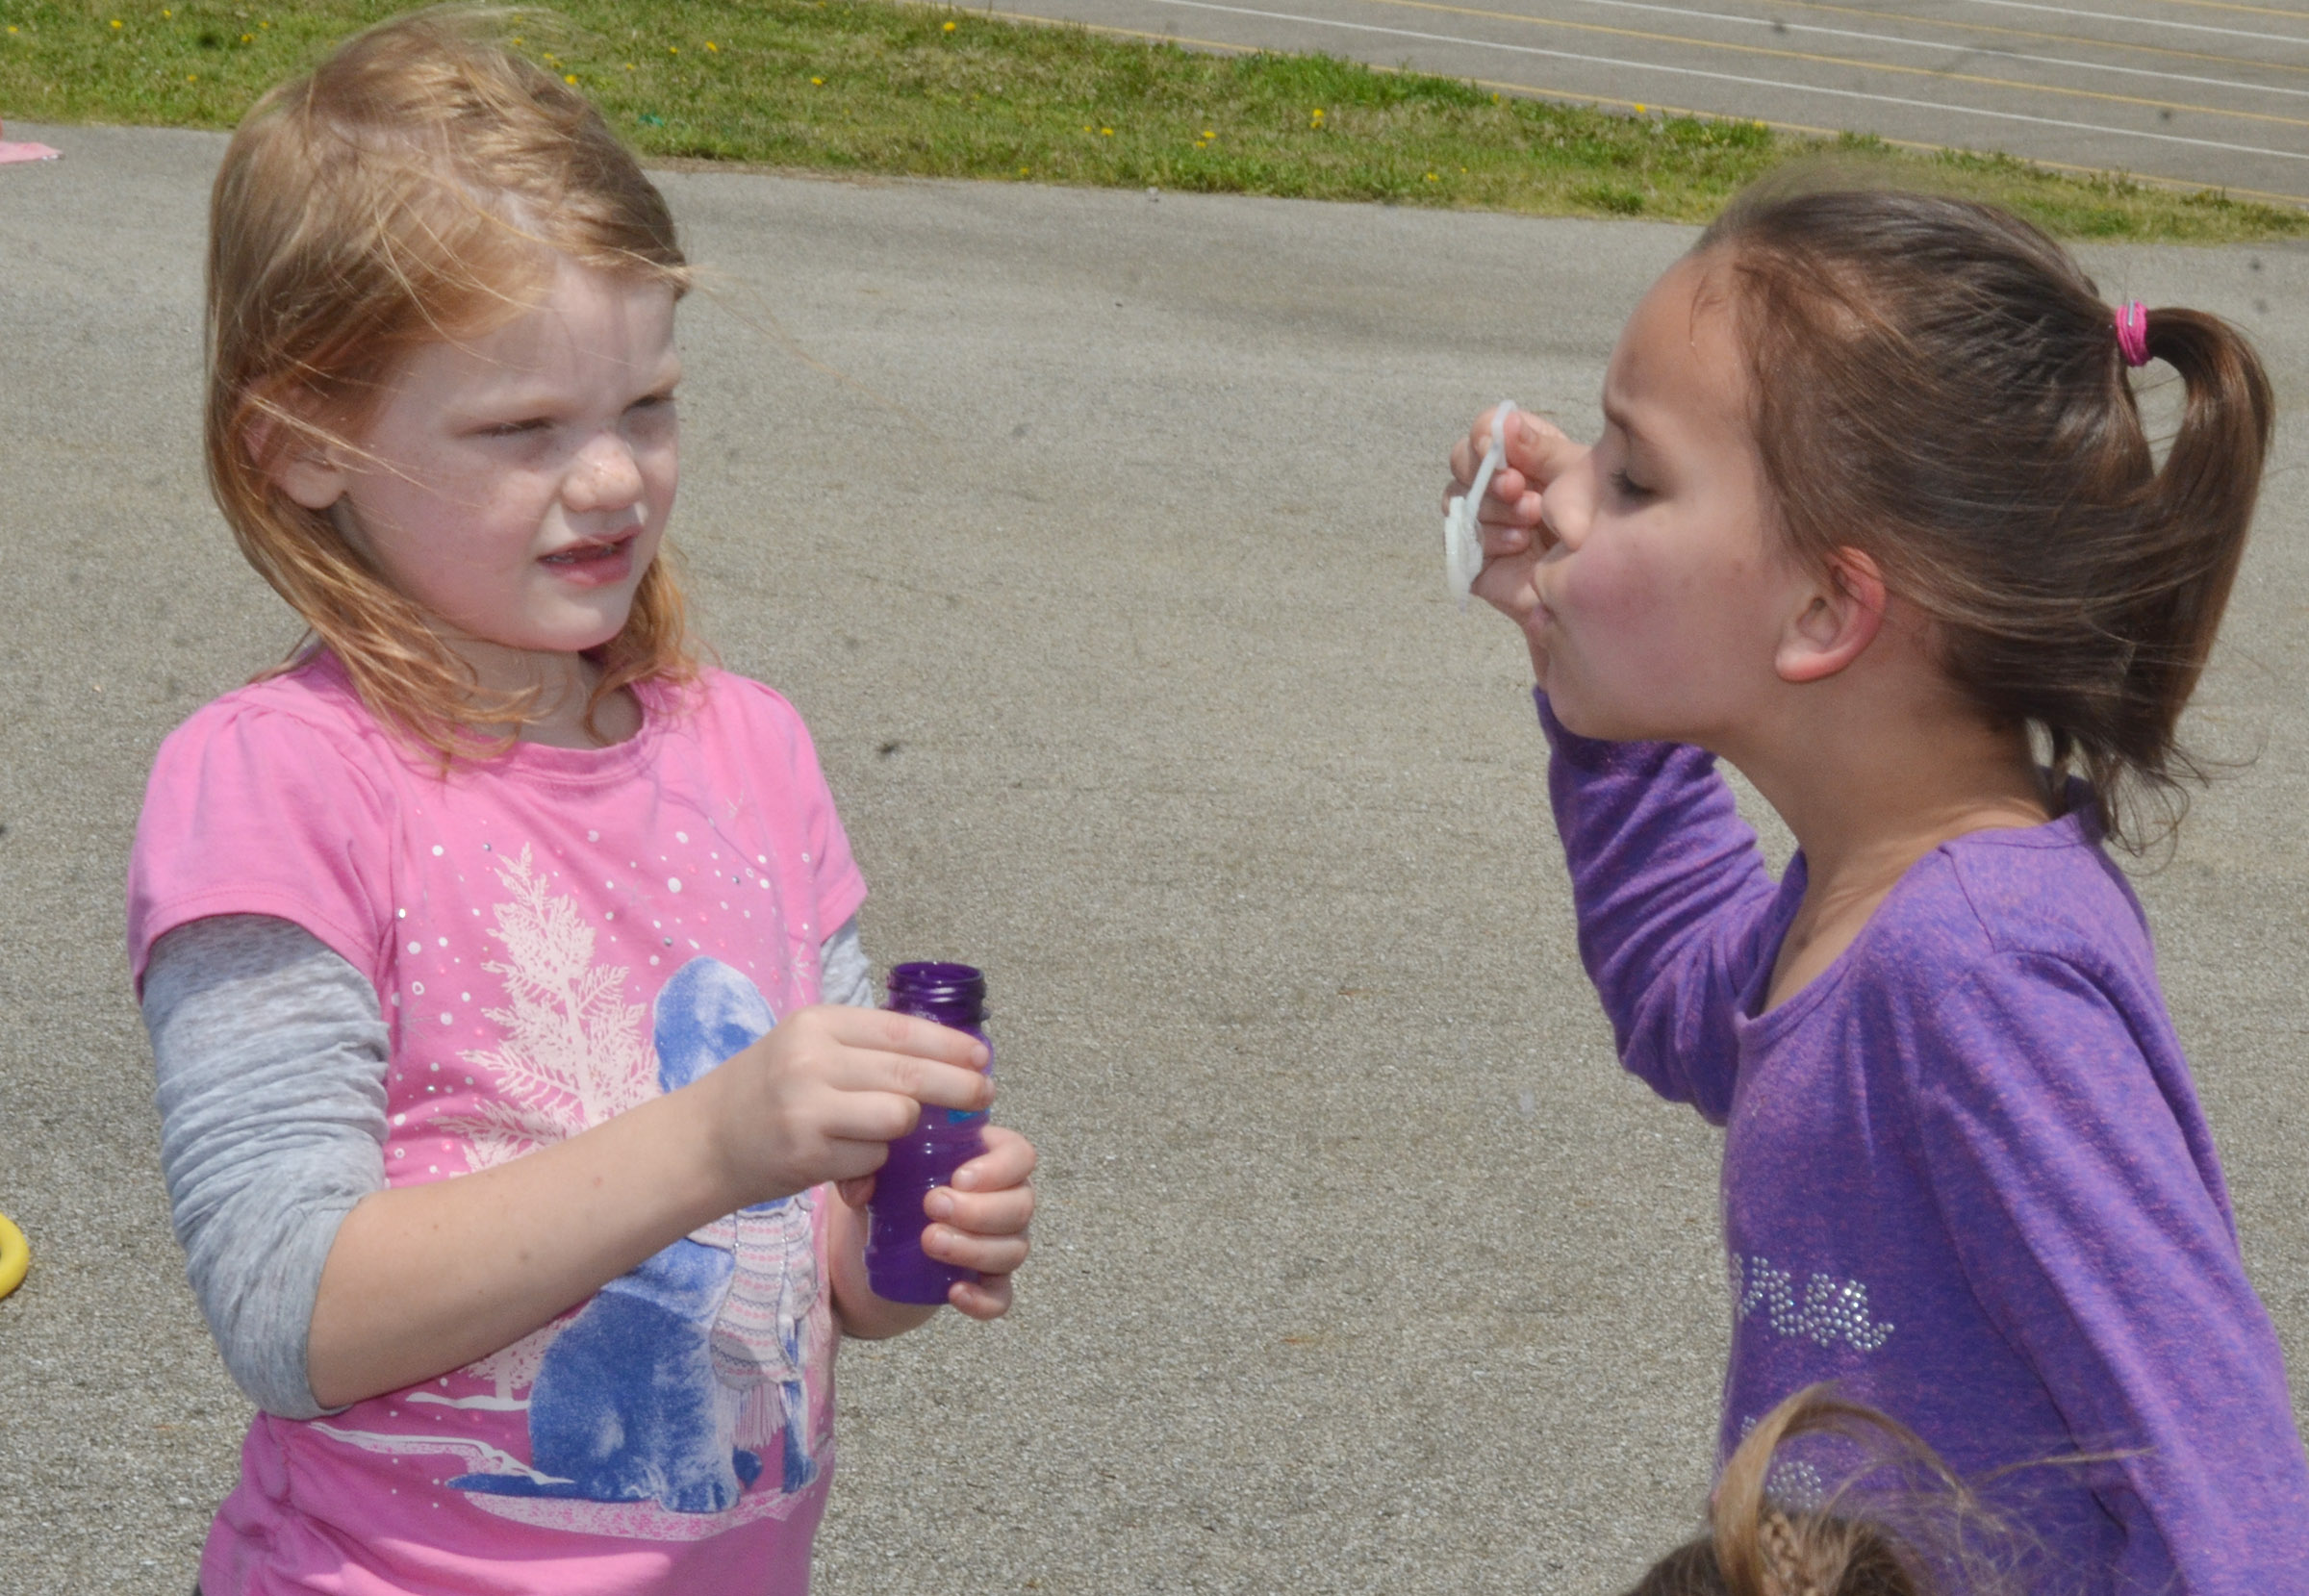 CES first-graders Gracie Wooley, at left, and Adriana Agent blow bubbles together.